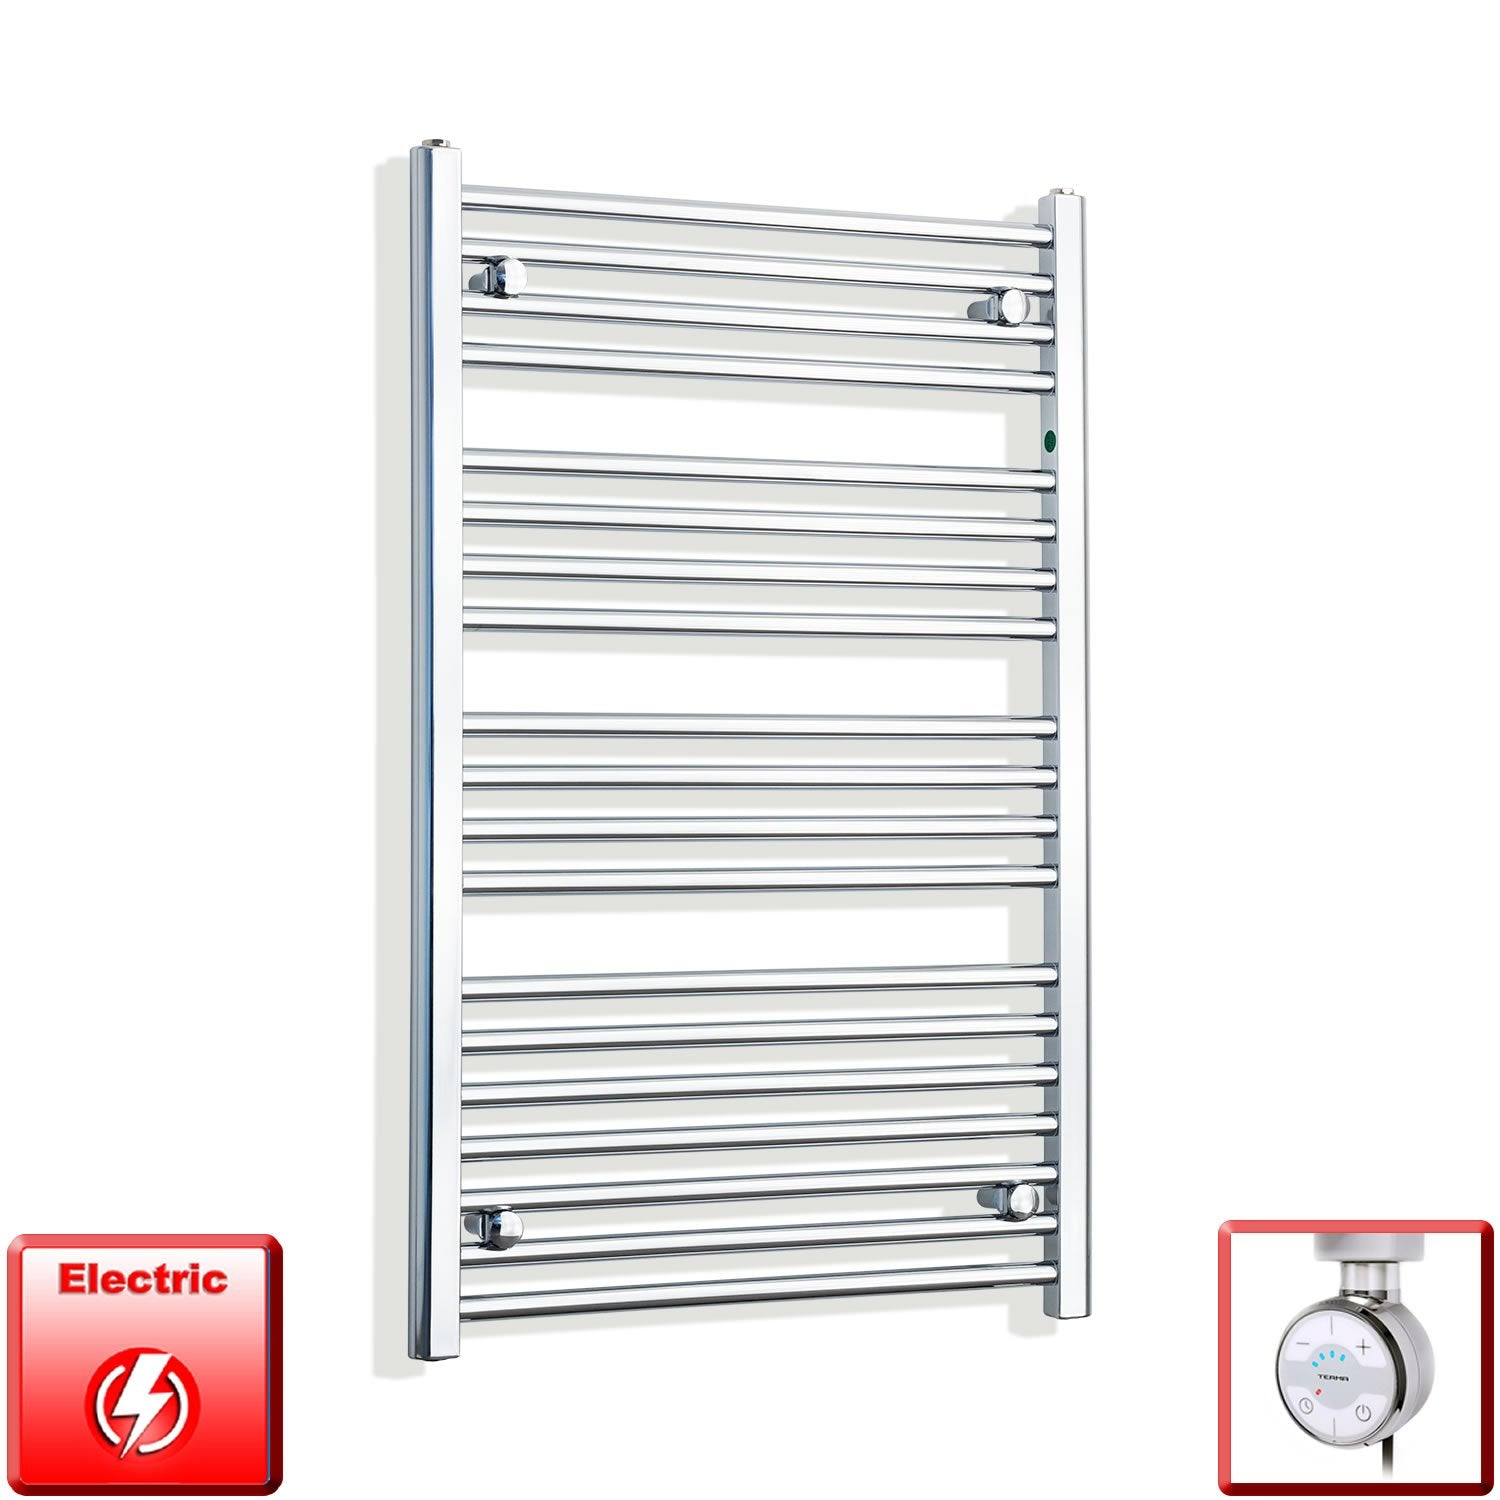 650mm Wide 1000mm High Flat Chrome Pre-Filled Electric Heated Towel Rail Radiator HTR,MOA Thermostatic Element